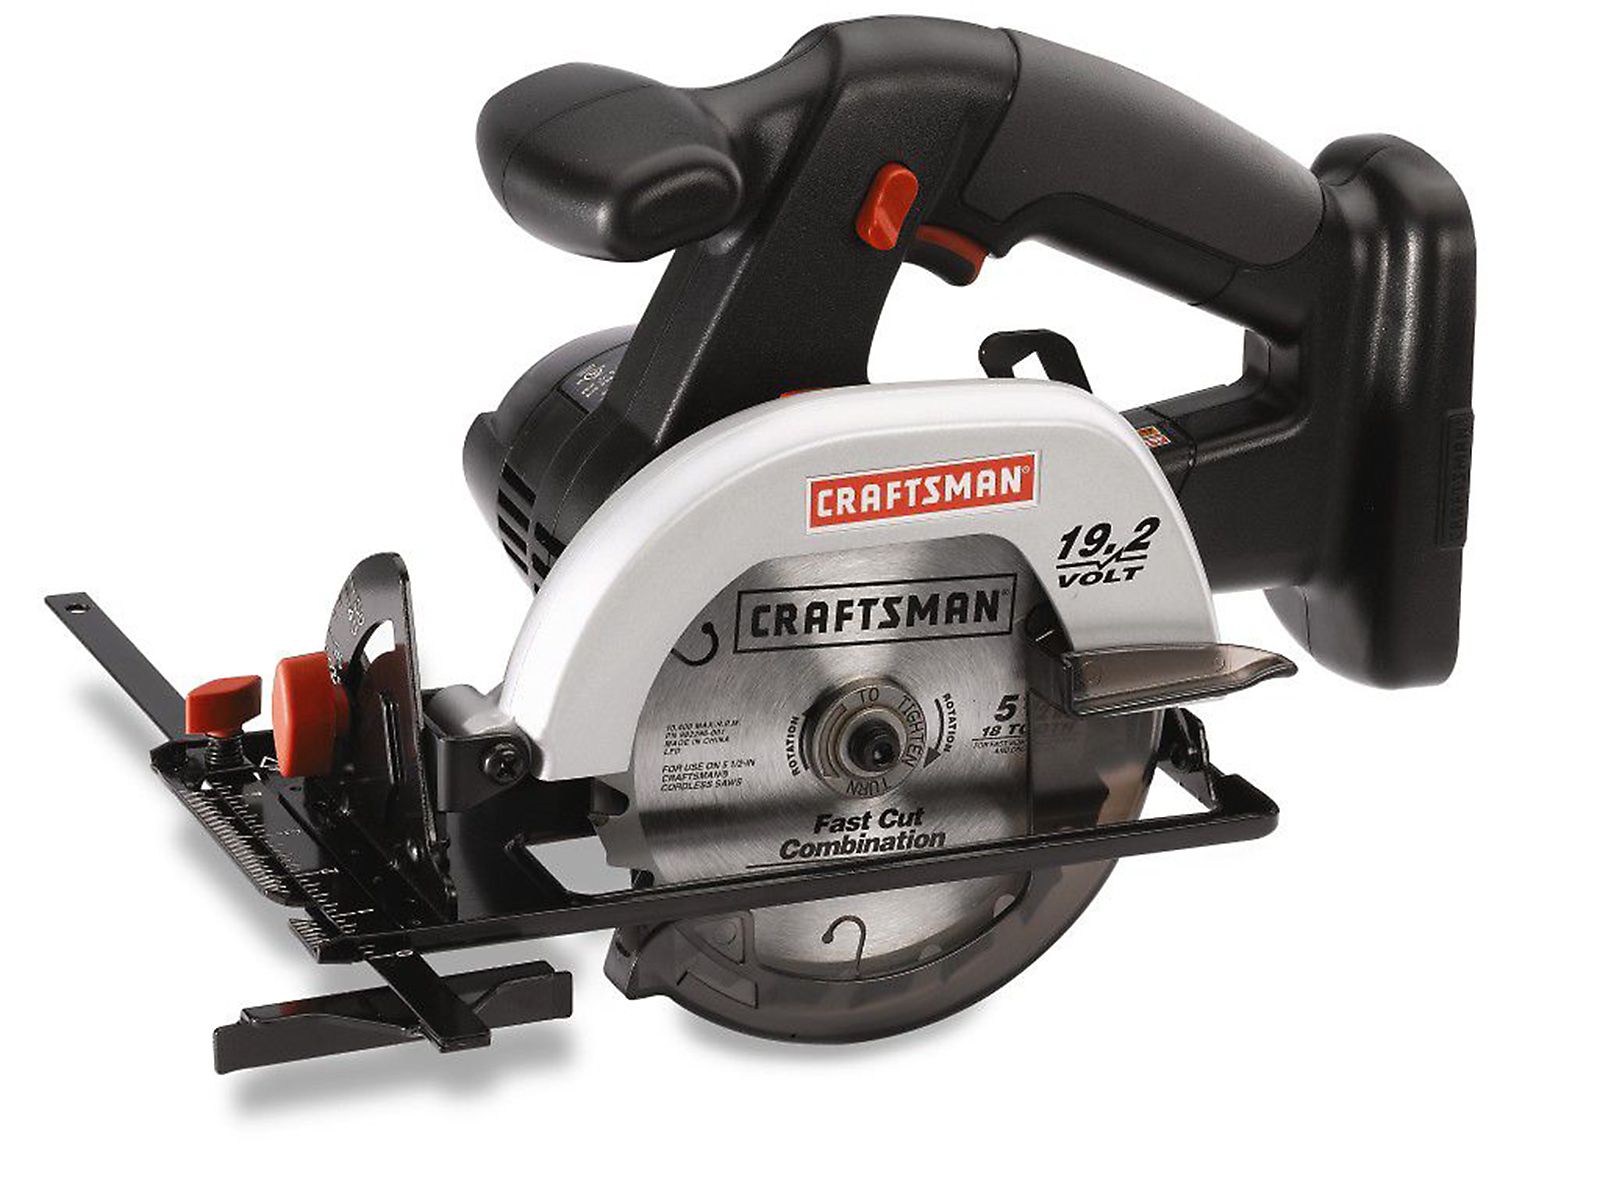 Craftsman Professional Use 19.2 Volt 5 pc. C3 Combo Kit